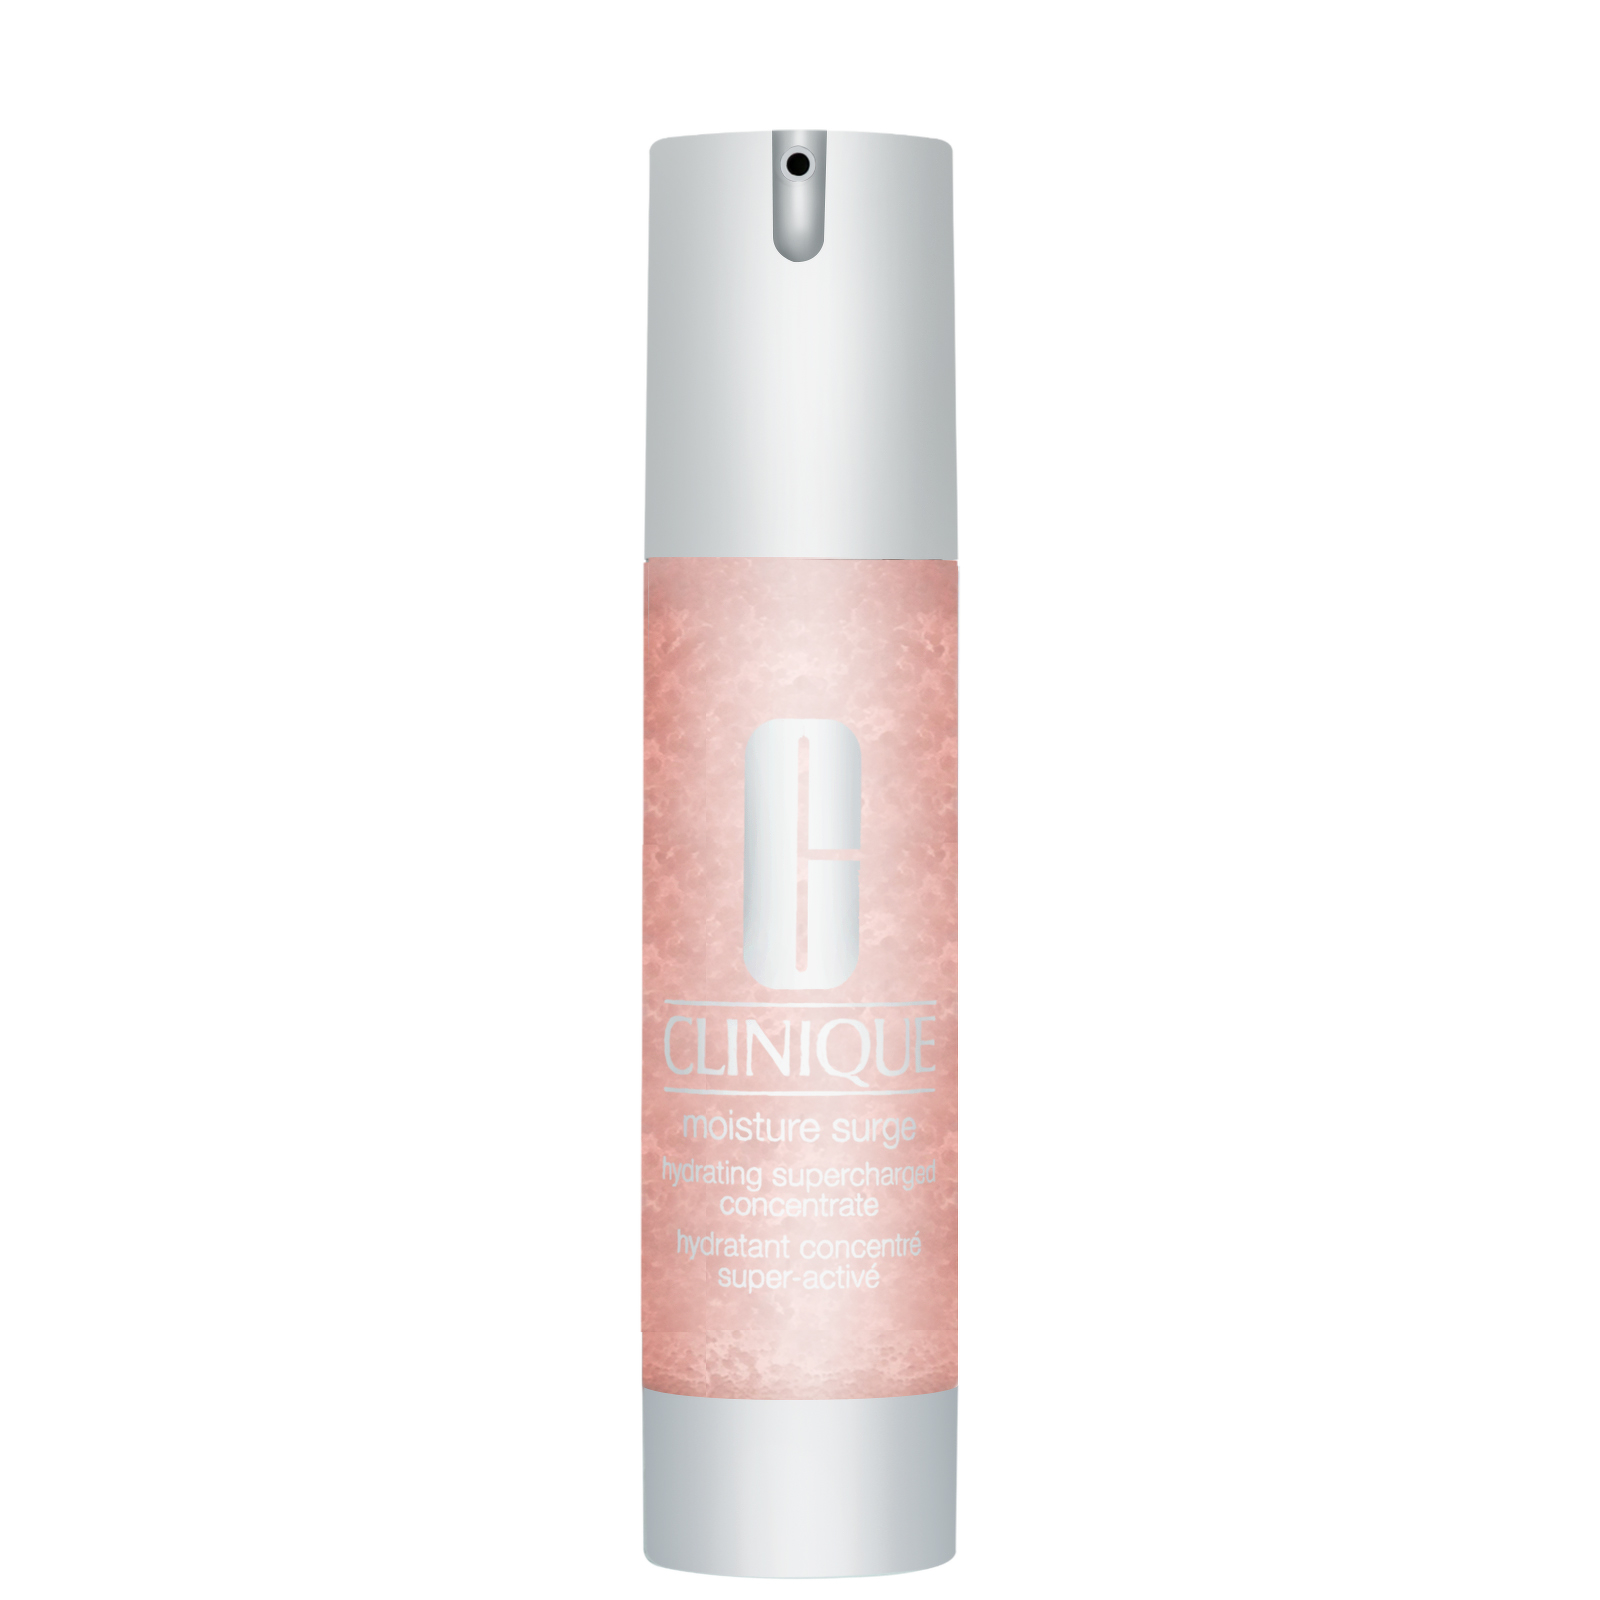 Clinique Moisturisers Moisture Surge Hydrating Supercharged Concentrate 48ml / 1.6 fl.oz.